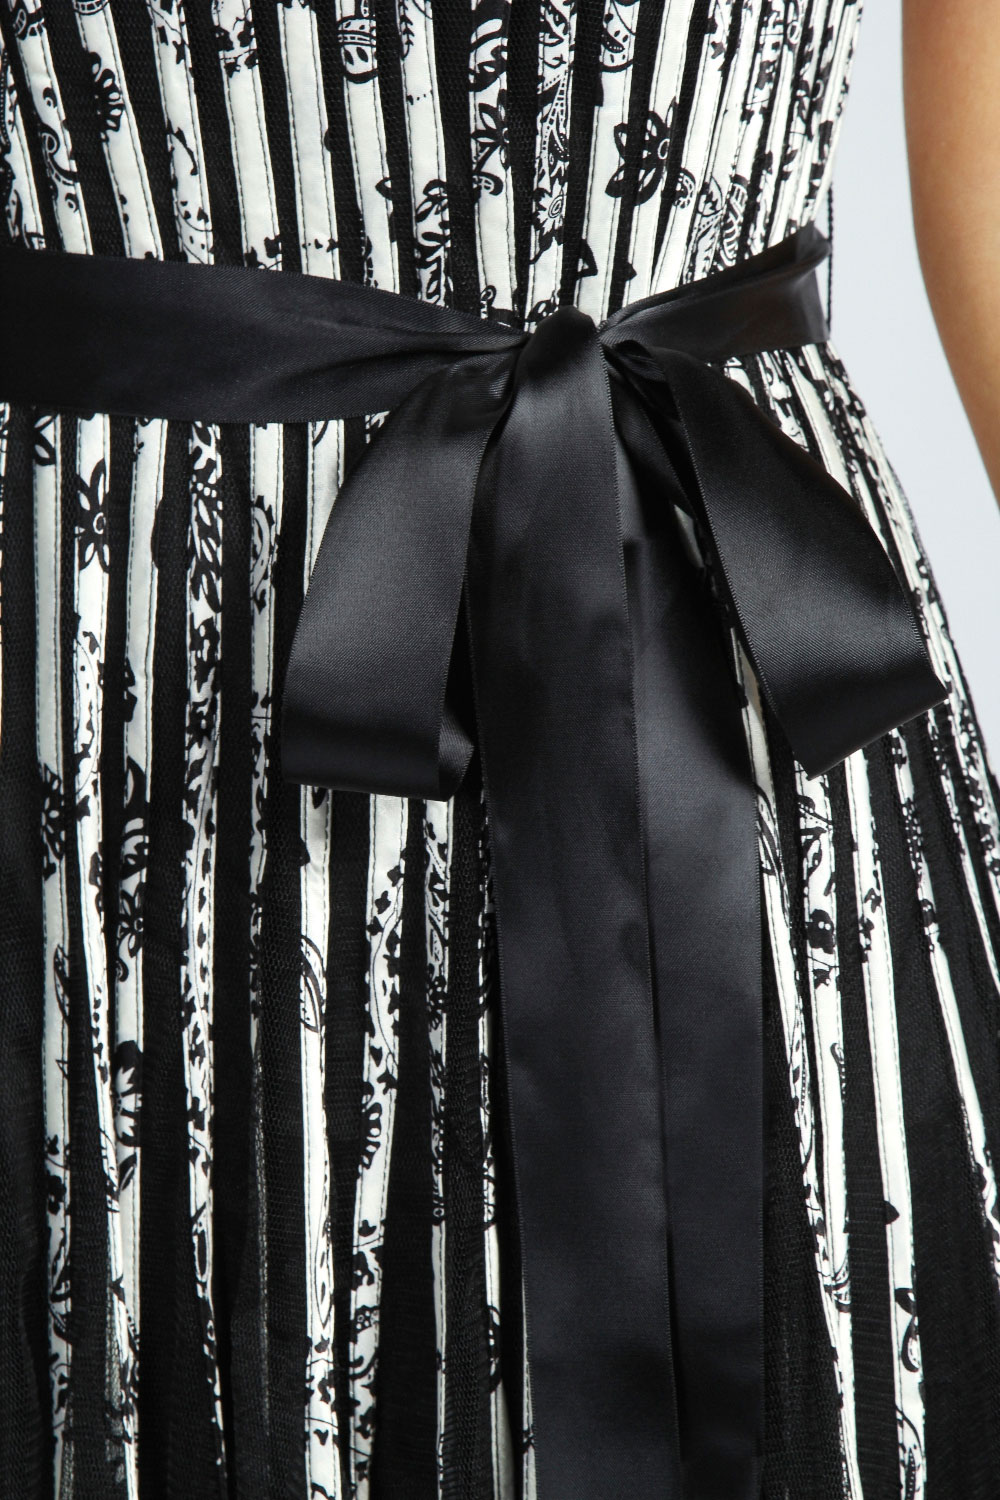 Black-White Sarah Jacquard Floral Organza Prom Netted Dress